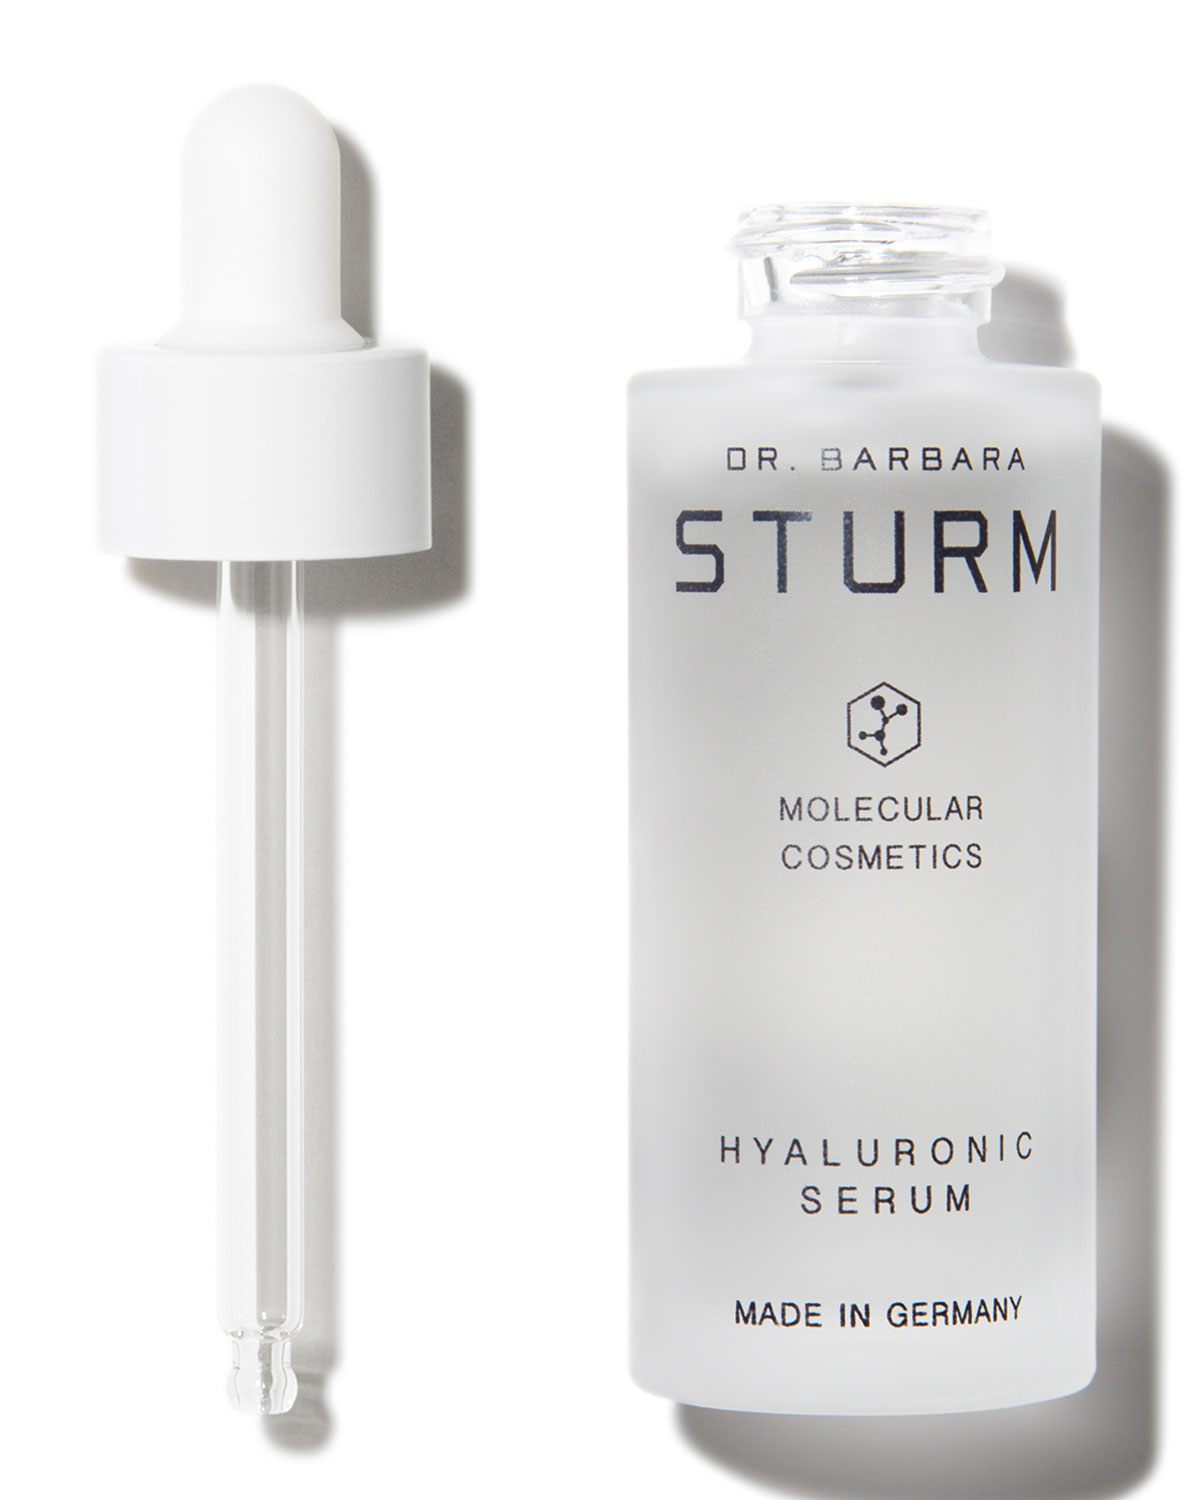 Dr. Barbara Sturm Hyaluronic Serum, 1.0 oz./ 30 mL | Neiman Marcus